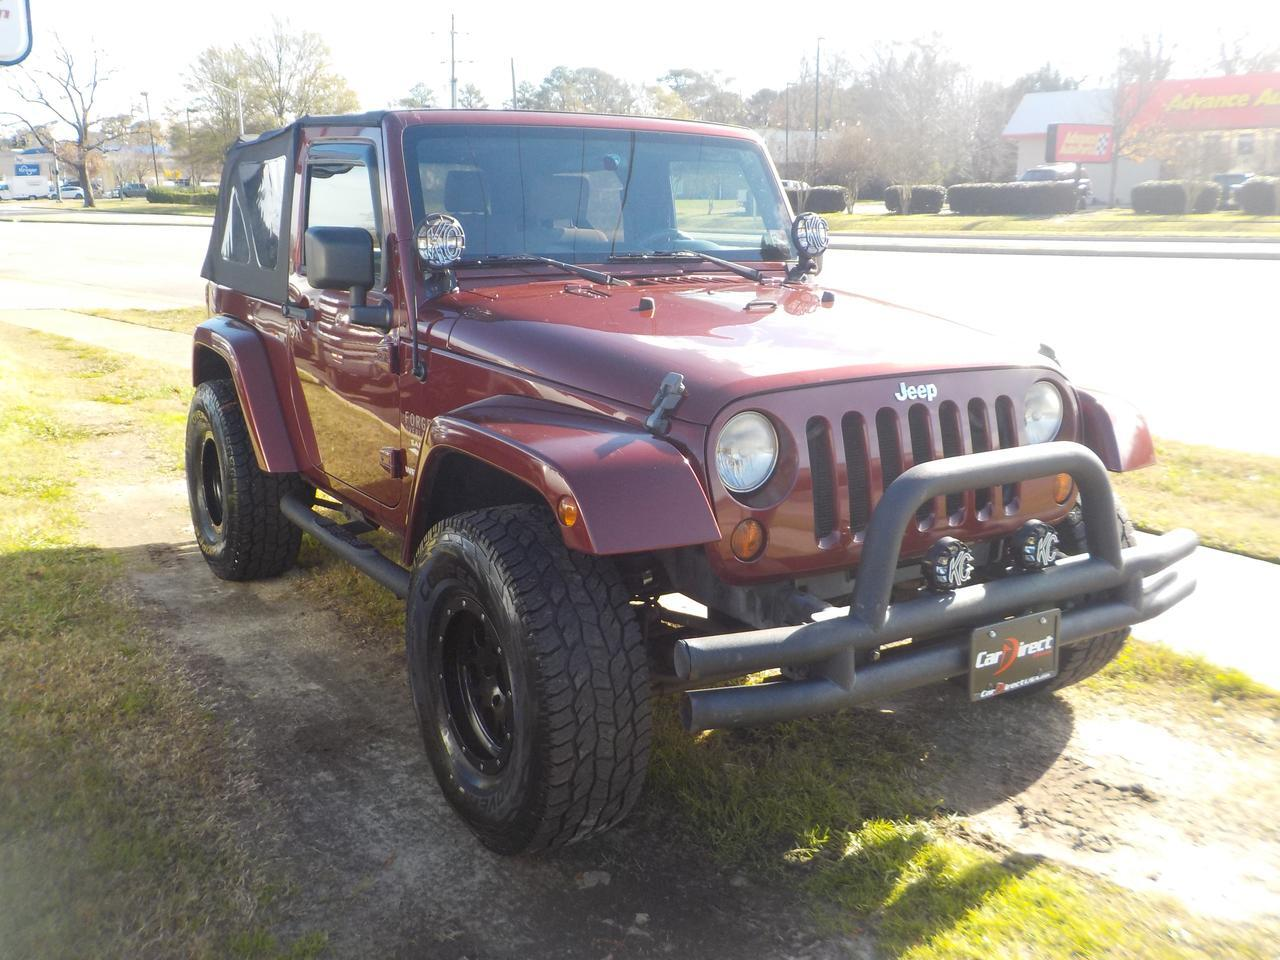 2008 JEEP WRANGLER SAHARA 4X4, TOW PKG, REMOTE START, SOFT TOP, SATELLITE CAPABILITIES, VERY CLEAN, WELL MAINTAINED! Virginia Beach VA